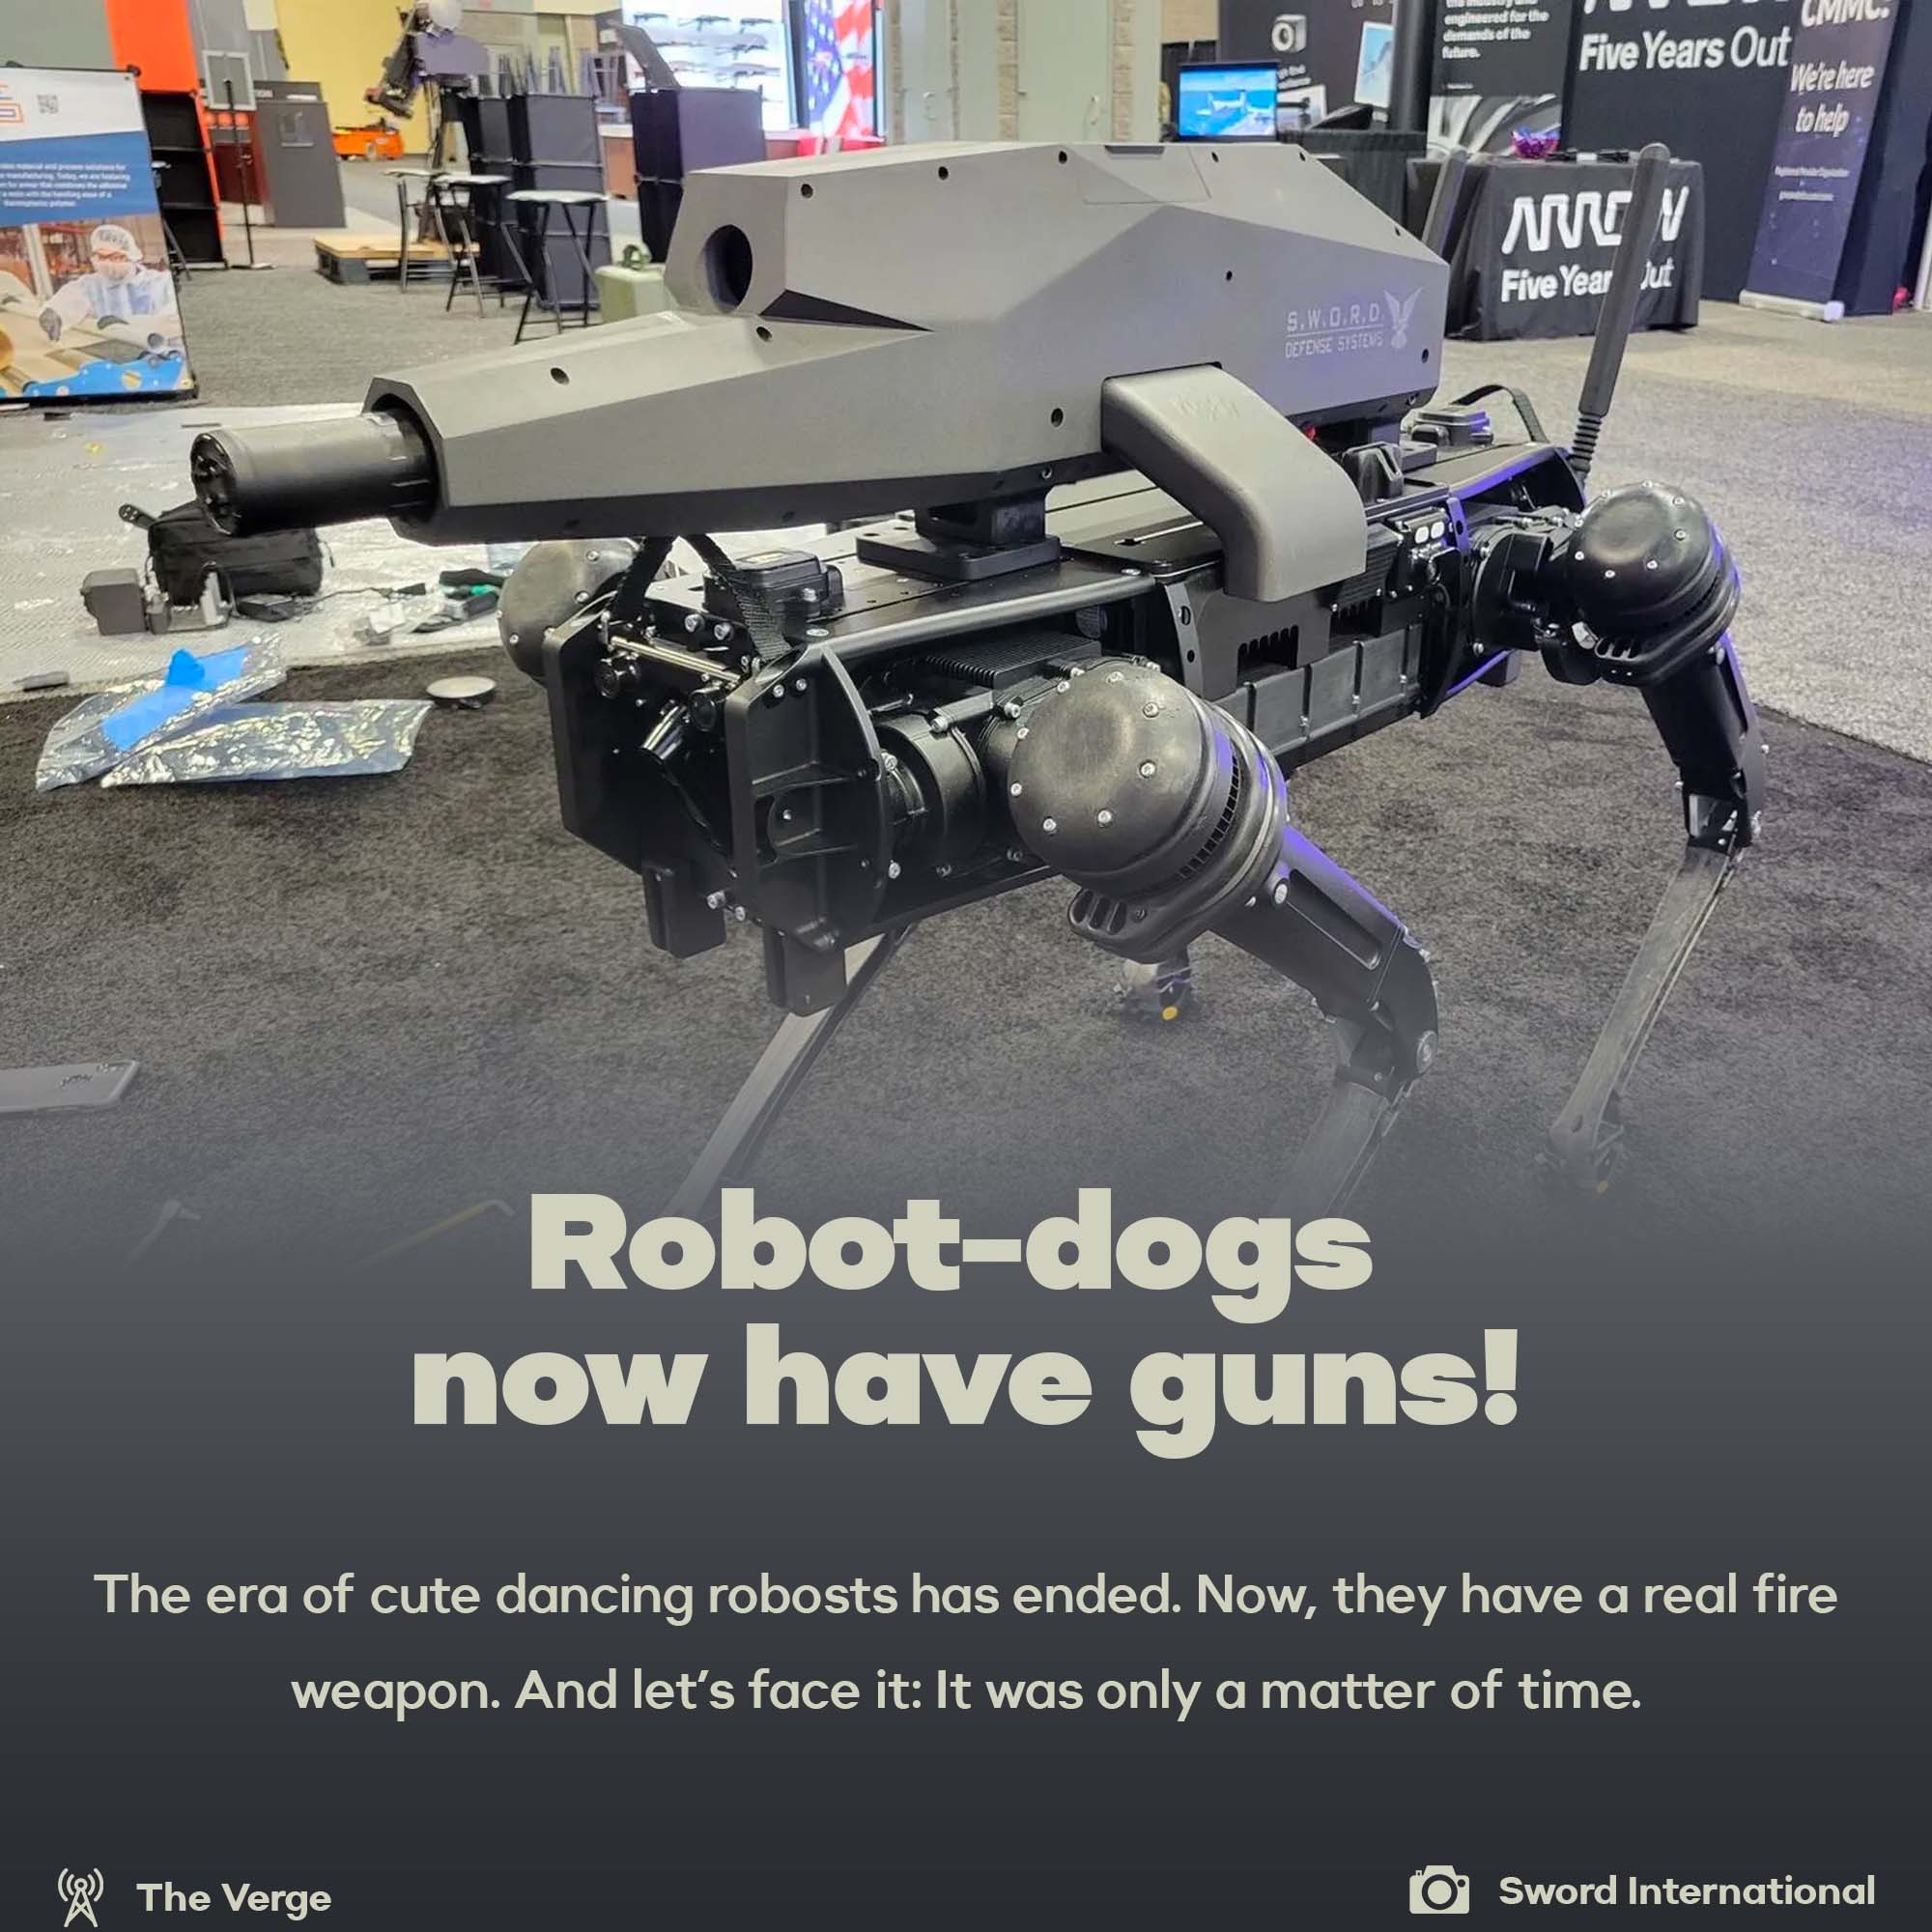 2021.41_Robotdogs_with_weapon-1